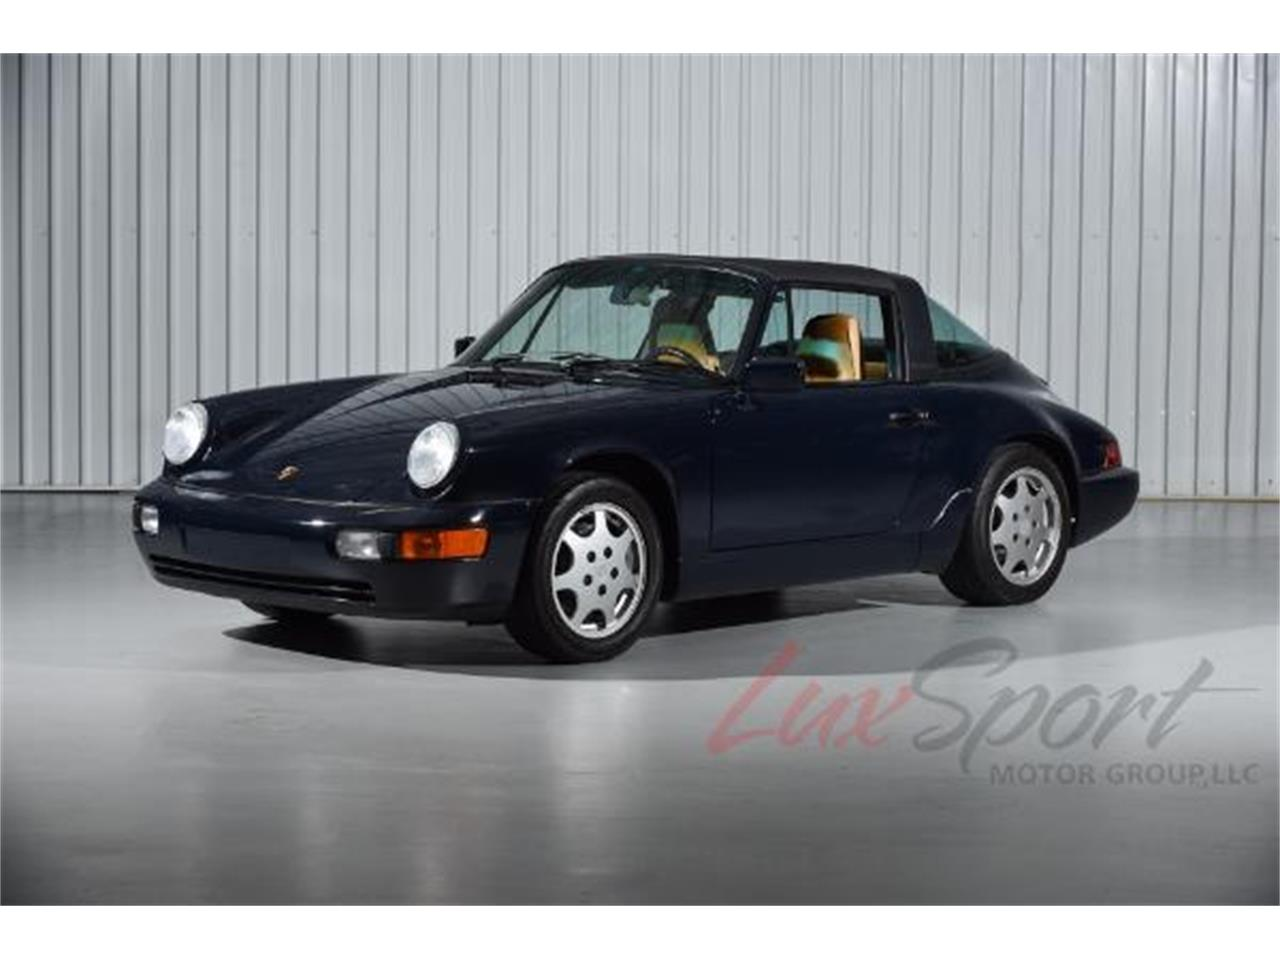 Large Picture of 1990 Porsche 964 Carrera 2 Targa located in New York - $59,995.00 Offered by LuxSport Motor Group, LLC - MNZP